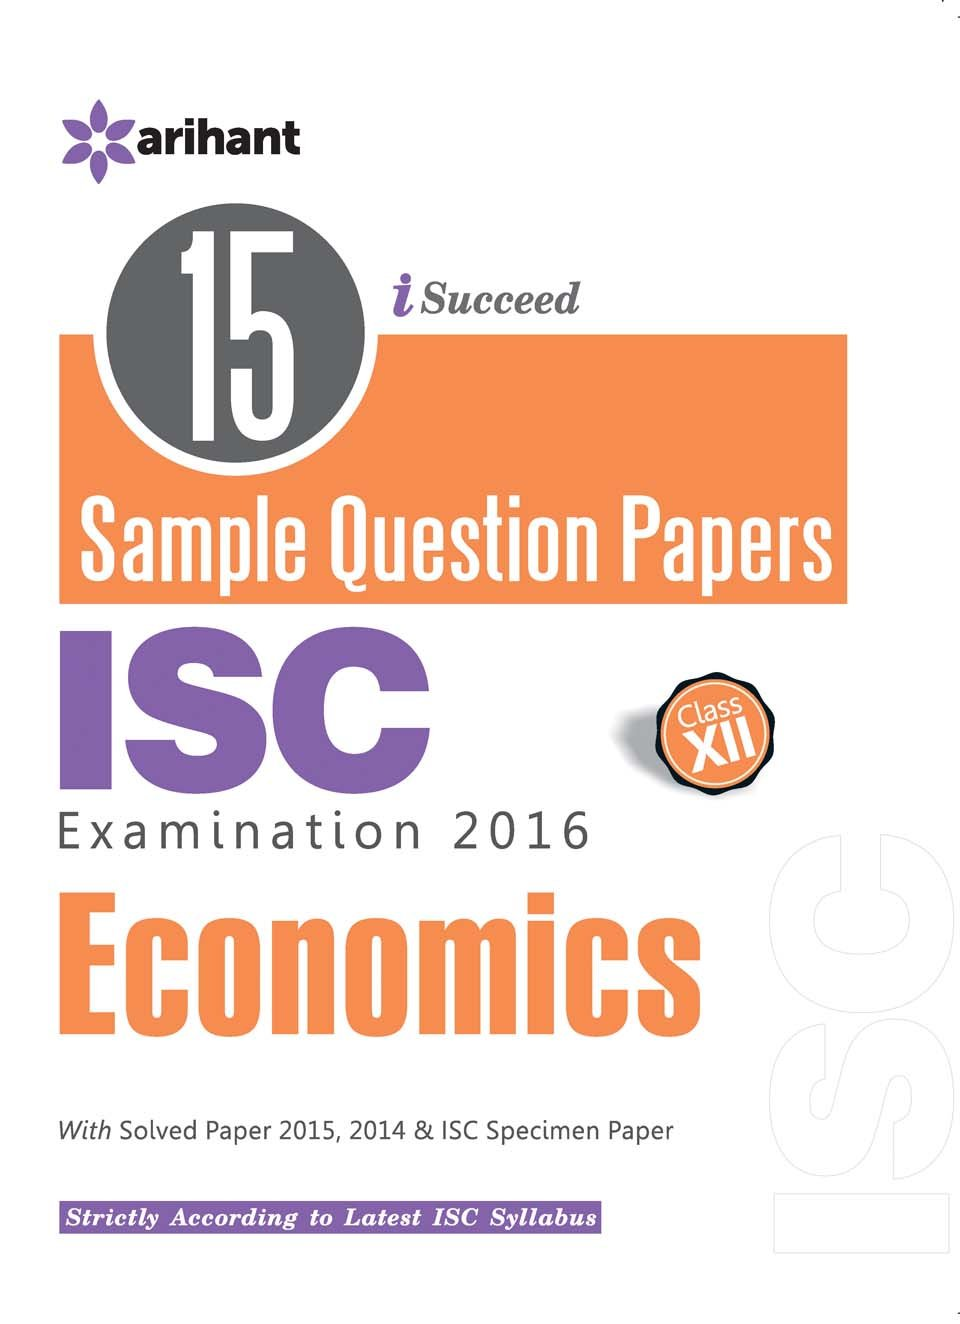 in buy 15 sample question papers isc economics class 12th  in buy 15 sample question papers isc economics class 12th old edition book online at low prices in 15 sample question papers isc economics